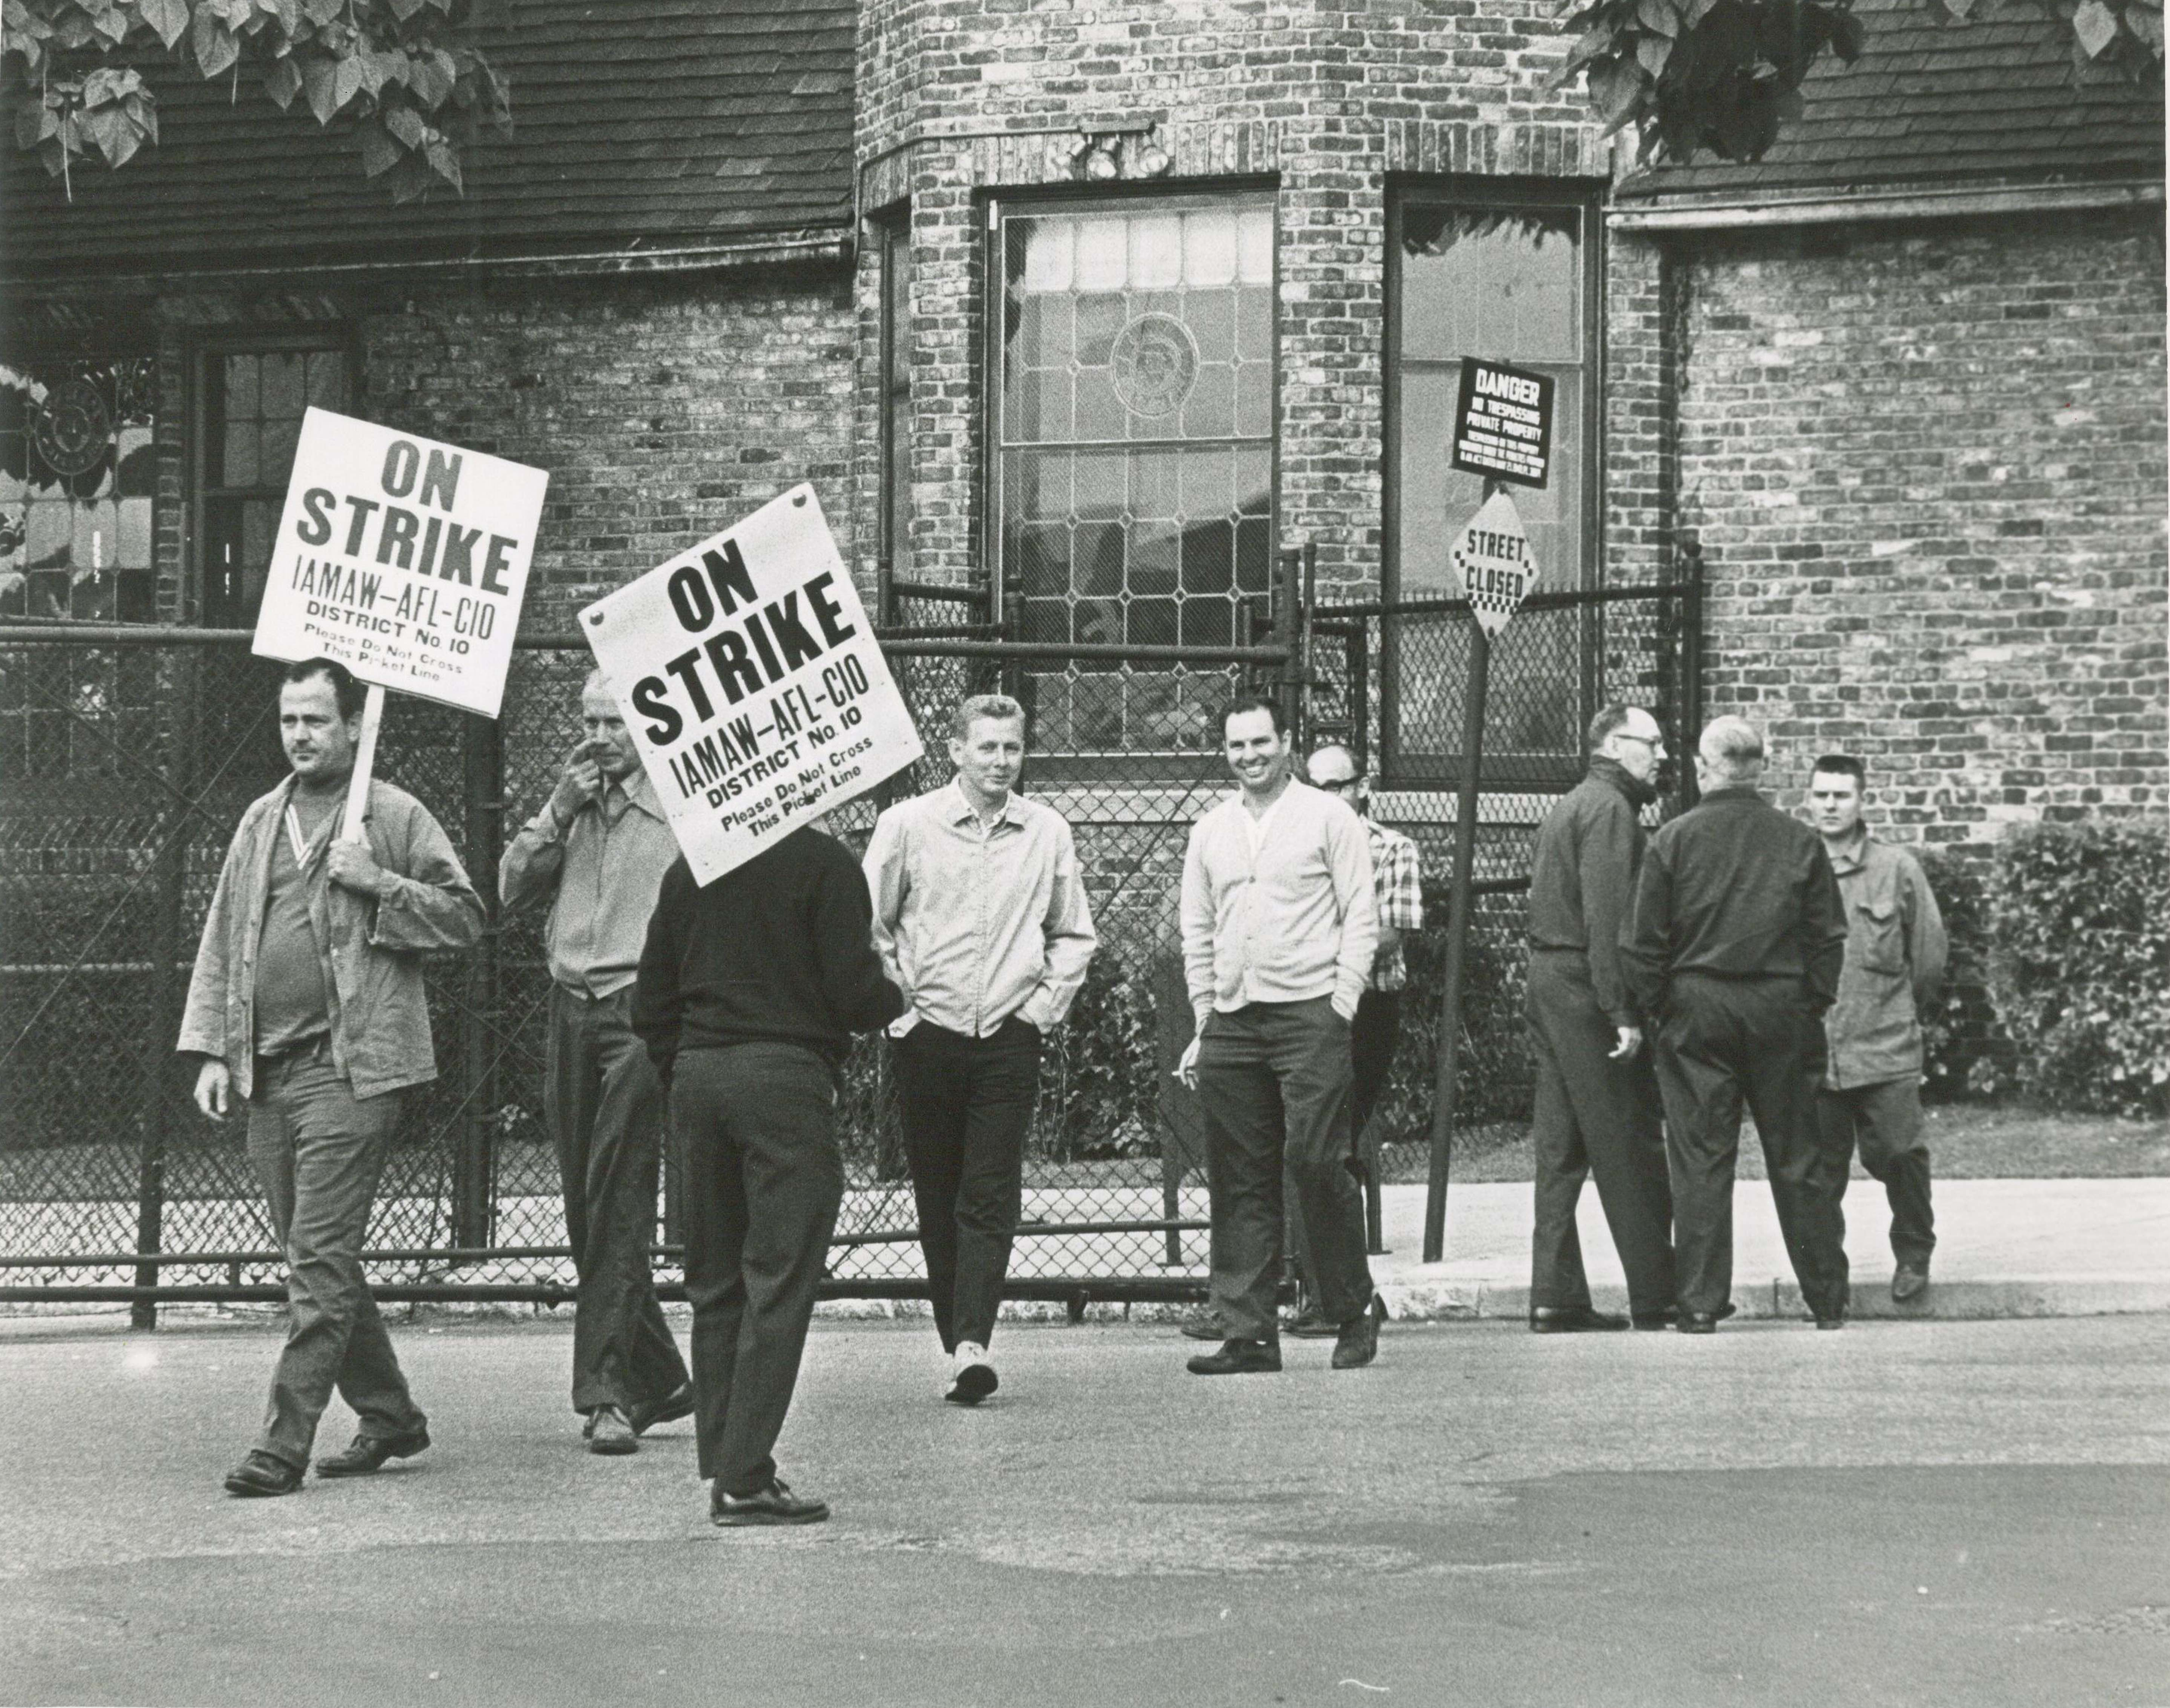 <table class=&quot;lightbox&quot;><tr><td colspan=2 class=&quot;lightbox-title&quot;>IAMAW-AFL-CIO Strike</td></tr><tr><td colspan=2 class=&quot;lightbox-caption&quot;>Members of  International Assoc. of Machinists &amp; Aerospace Workers (IAMAW)-AFL-CIO picket with signs in 1968.</td></tr><tr><td colspan=2 class=&quot;lightbox-spacer&quot;></td></tr><tr class=&quot;lightbox-detail&quot;><td class=&quot;cell-title&quot;>Source: </td><td class=&quot;cell-value&quot;>From the Historic Photo Library of the Milwaukee Public Library. Reprinted with permission.<br /><a href=&quot;http://content.mpl.org/cdm/singleitem/collection/HstoricPho/id/3946/rec/49&quot; target=&quot;_blank&quot;>Milwaukee Public Library</a></td></tr><tr class=&quot;filler-row&quot;><td colspan=2>&nbsp;</td></tr></table>